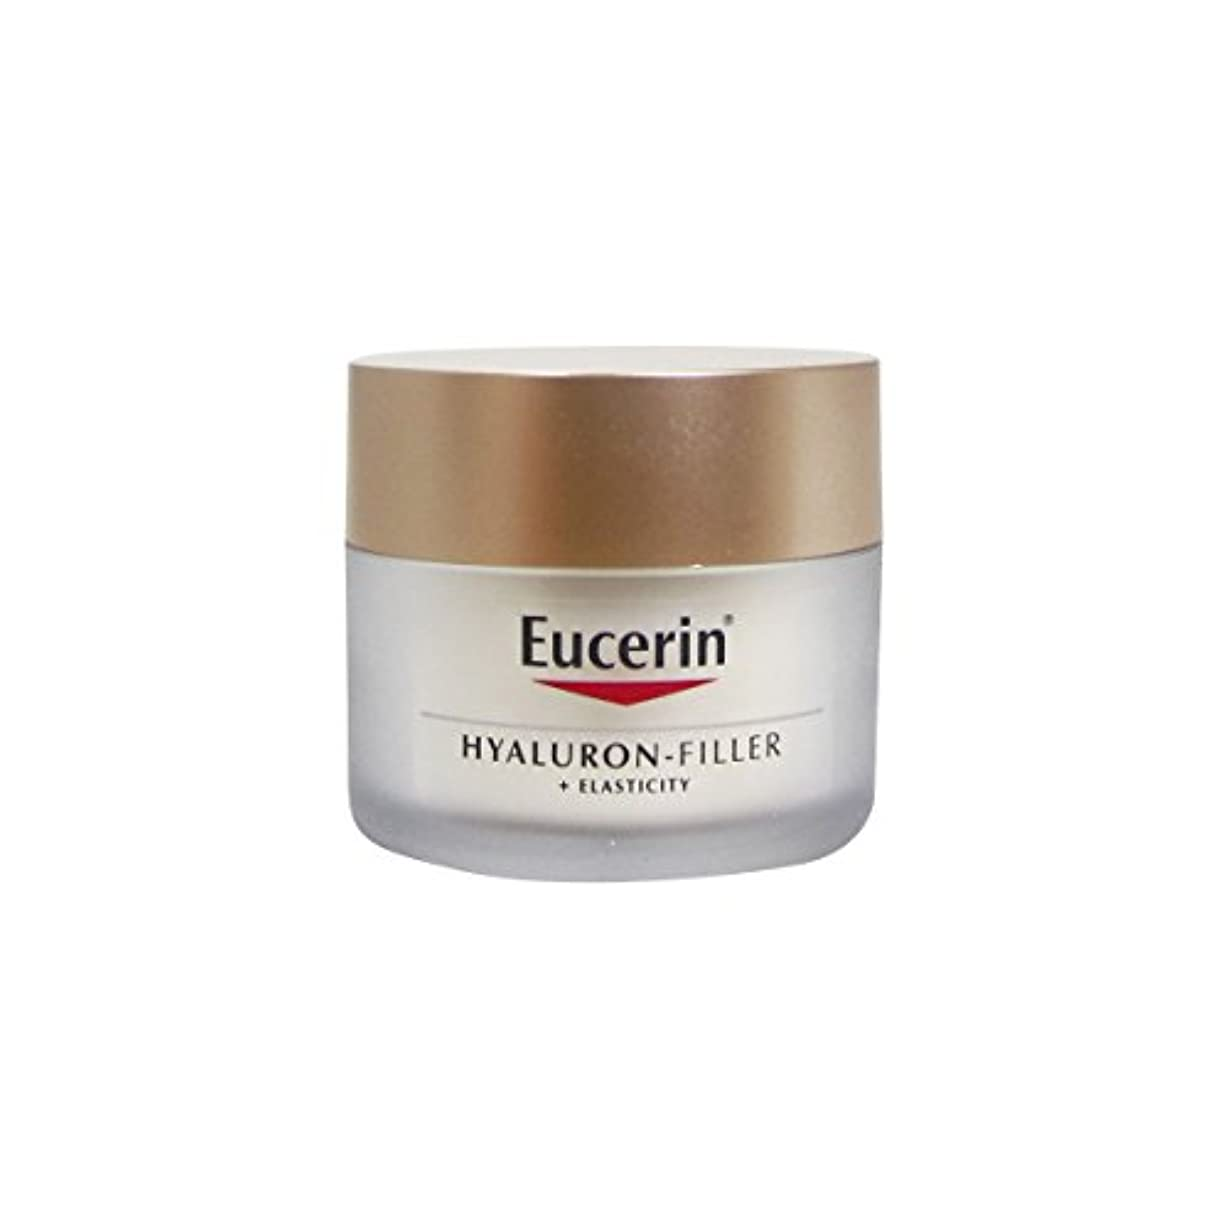 資格情報逸脱シチリアEucerin Hyaluron Filler + Elasticity Day Cream Spf15 50ml [並行輸入品]